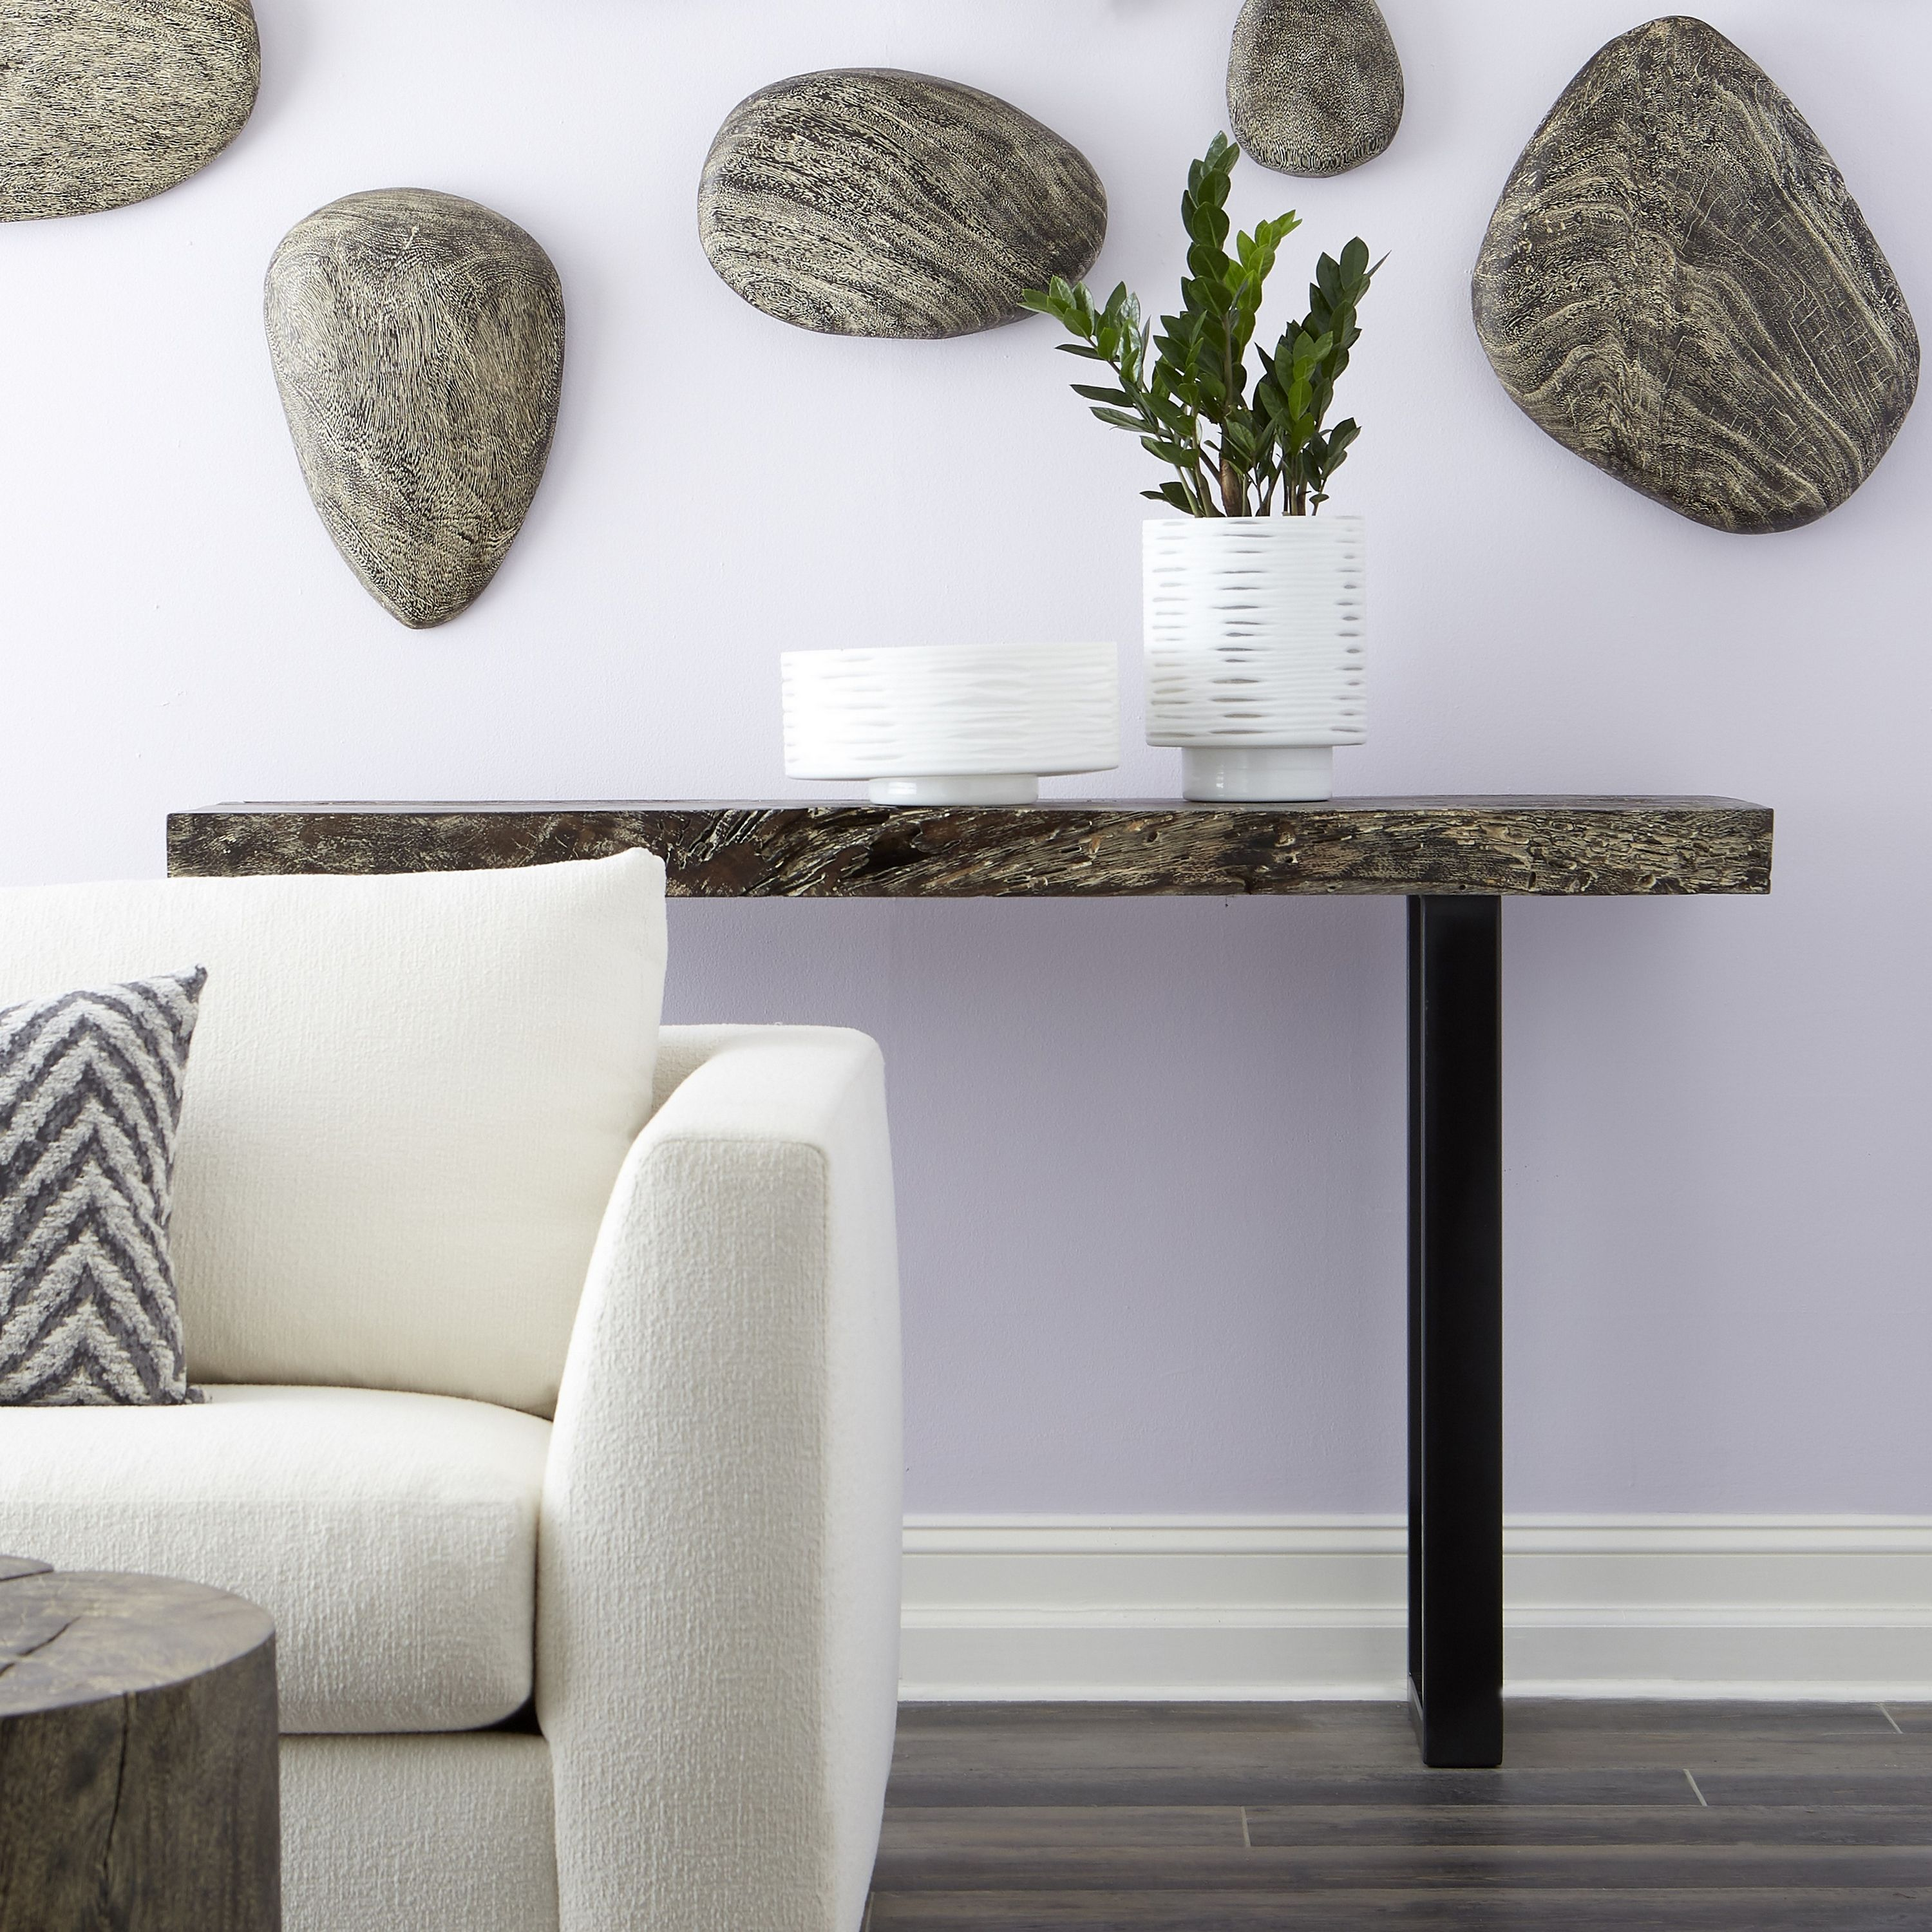 Our grey stone console table with black metal legs